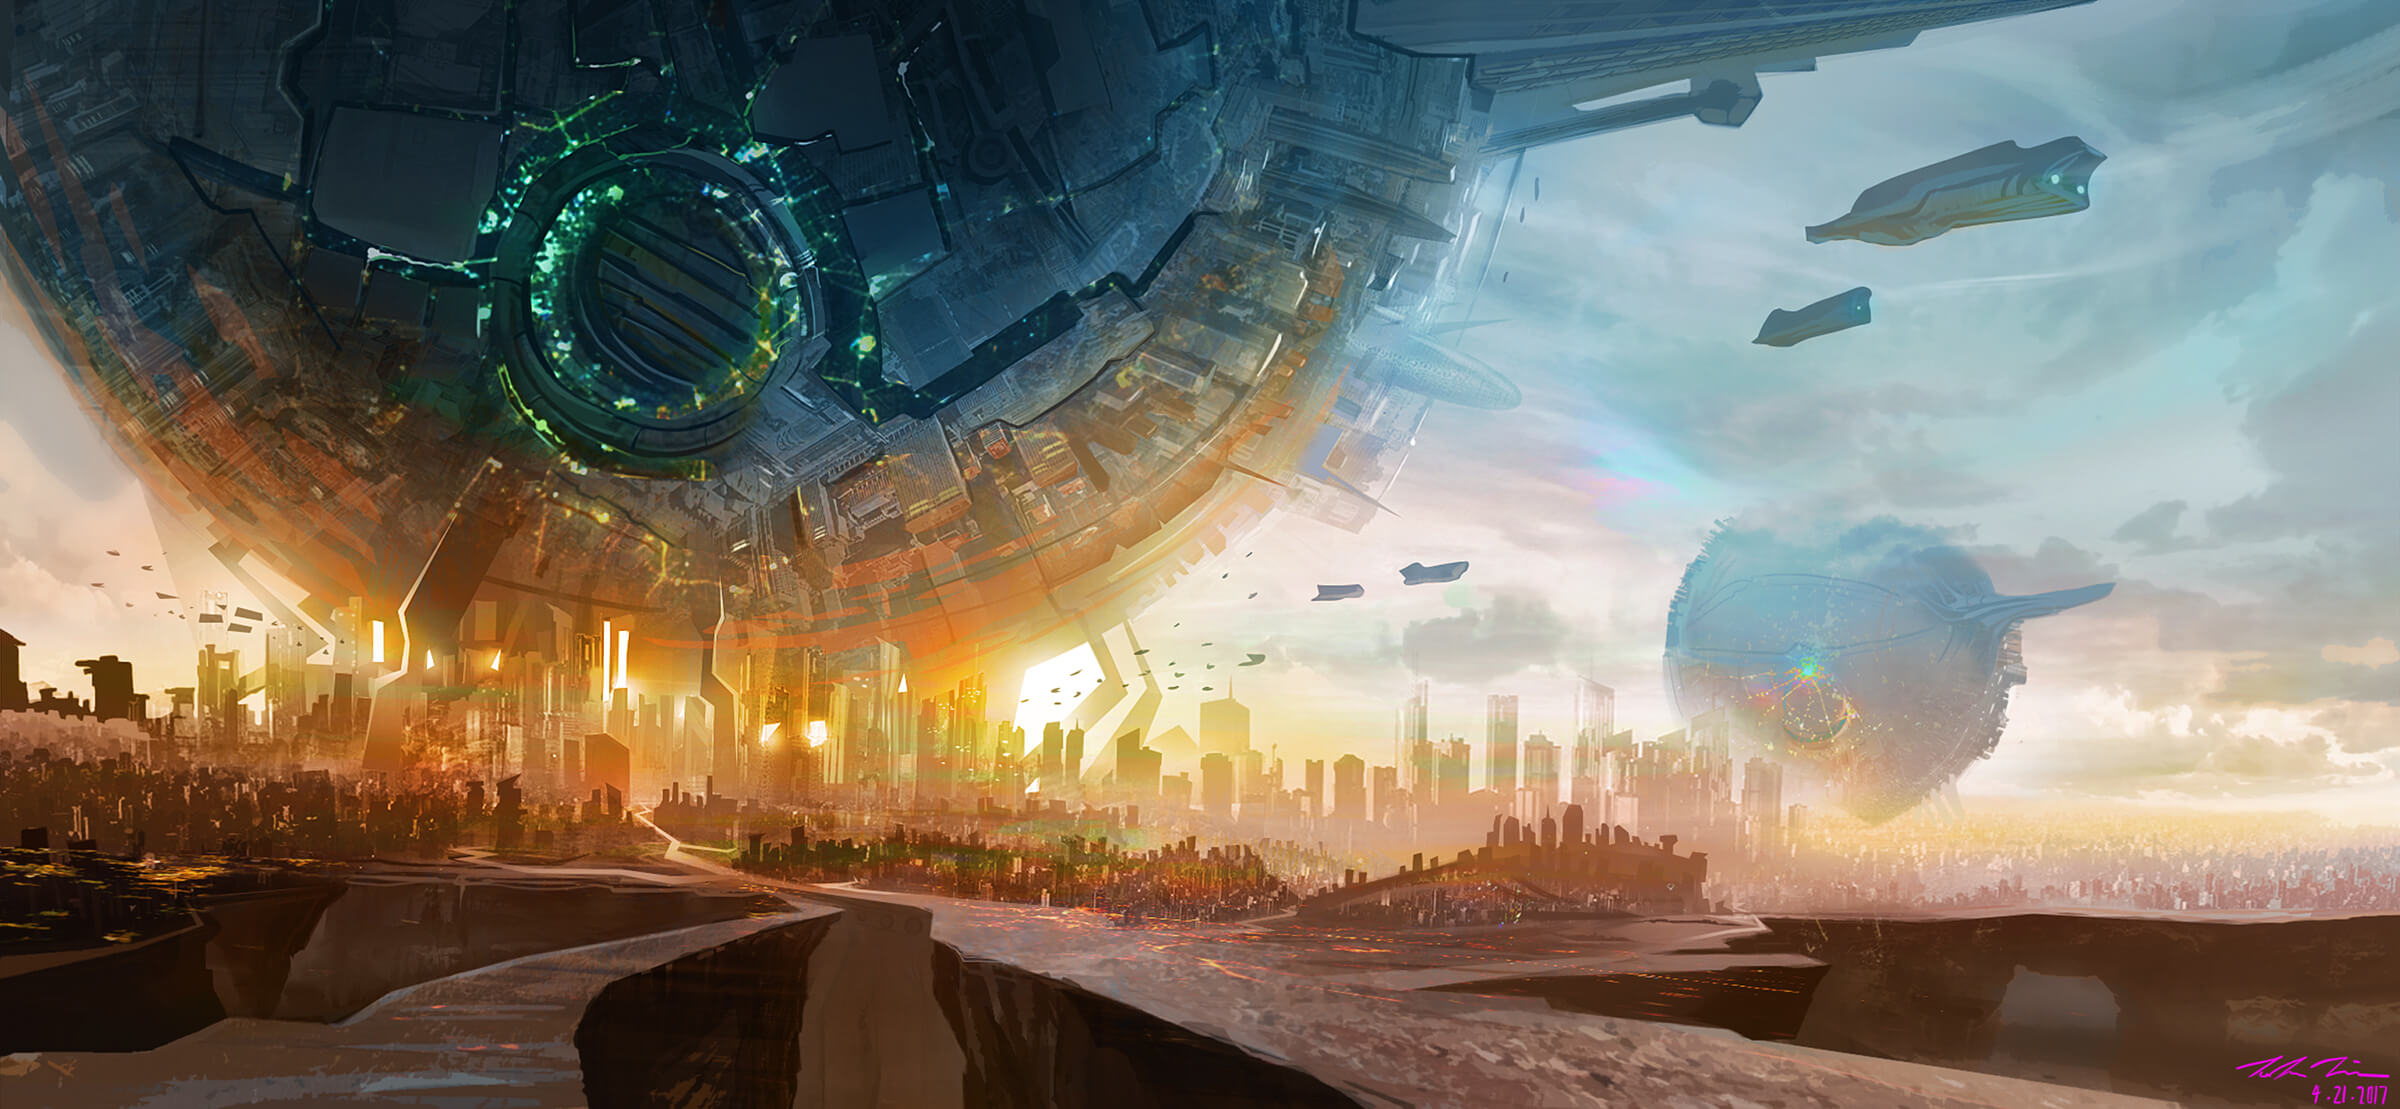 Gigantic metal sphere structures tower over futuristic cities as air/space-ships fly through the sky.